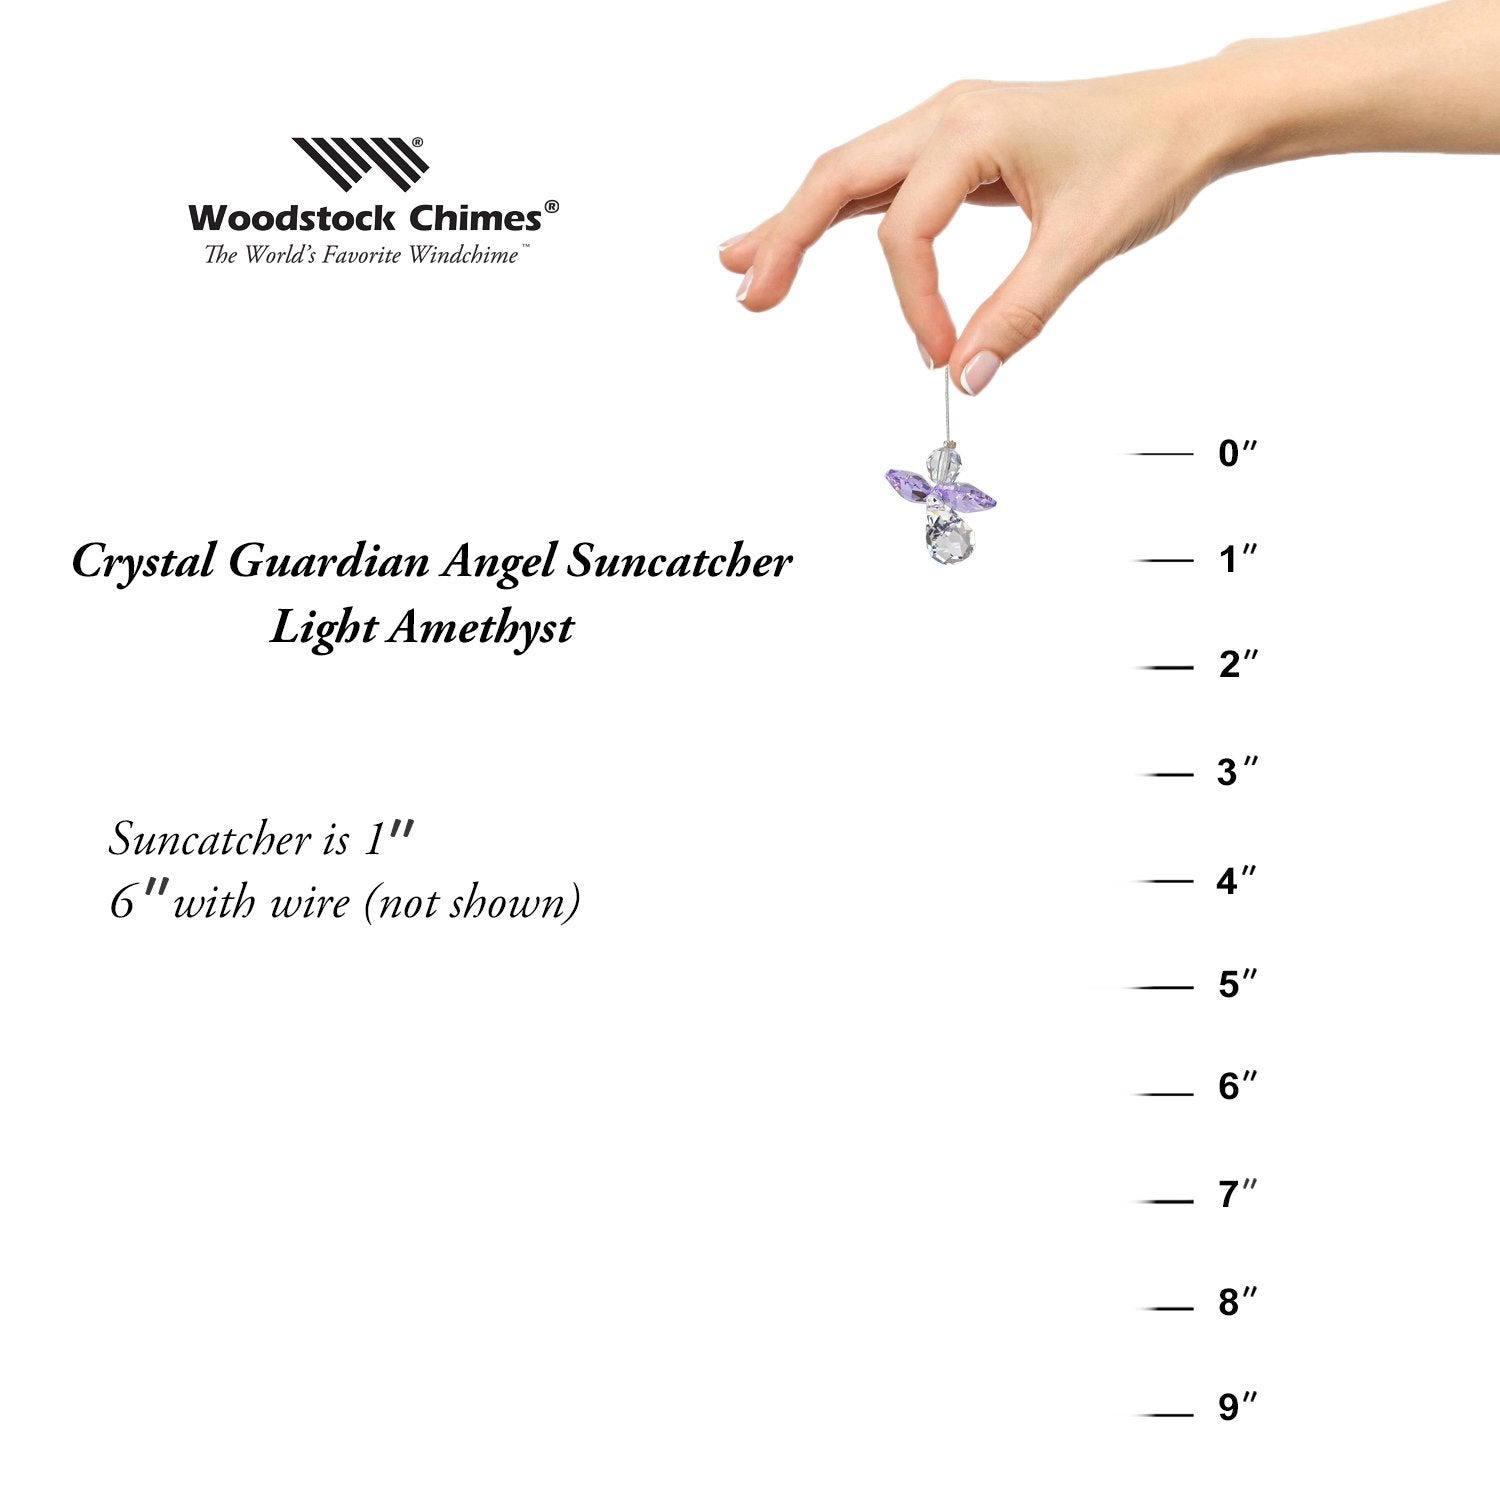 Crystal Guardian Angel Suncatcher - Light Amethyst (June) proportion image